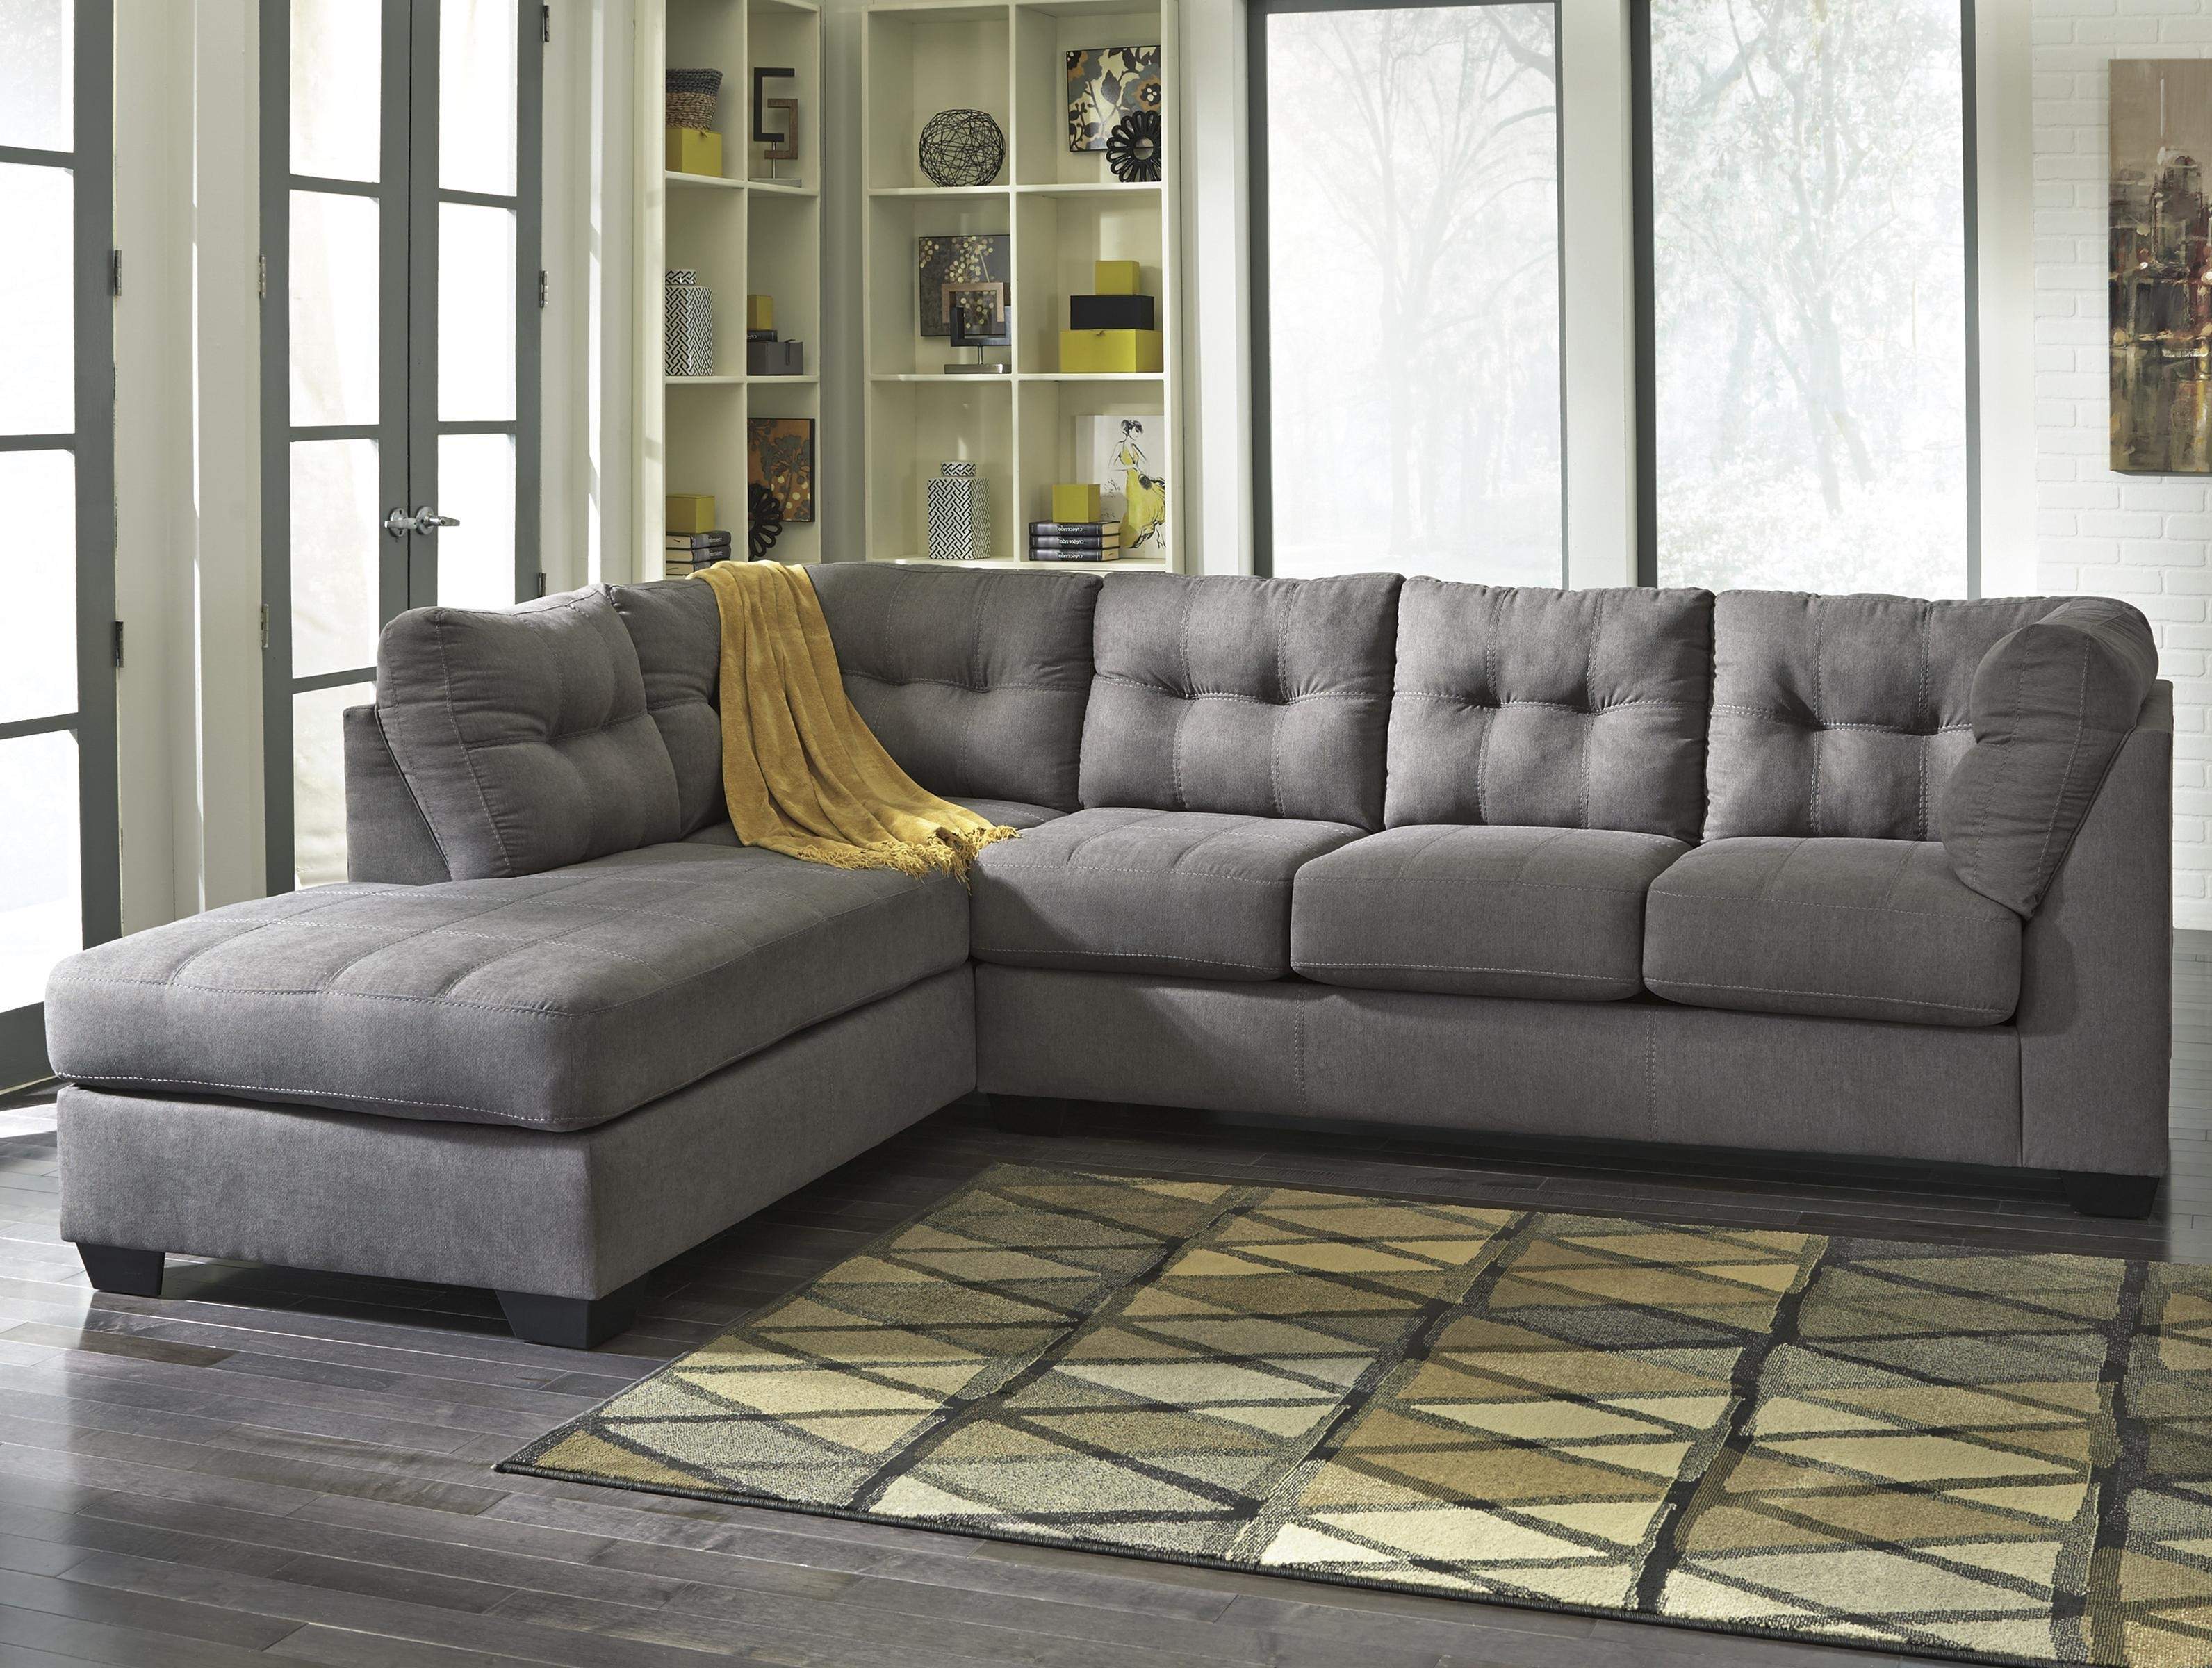 Benchcraft Maier – Charcoal 2 Piece Sectional W/ Sleeper Sofa & Left Within Glamour Ii 3 Piece Sectionals (View 24 of 25)